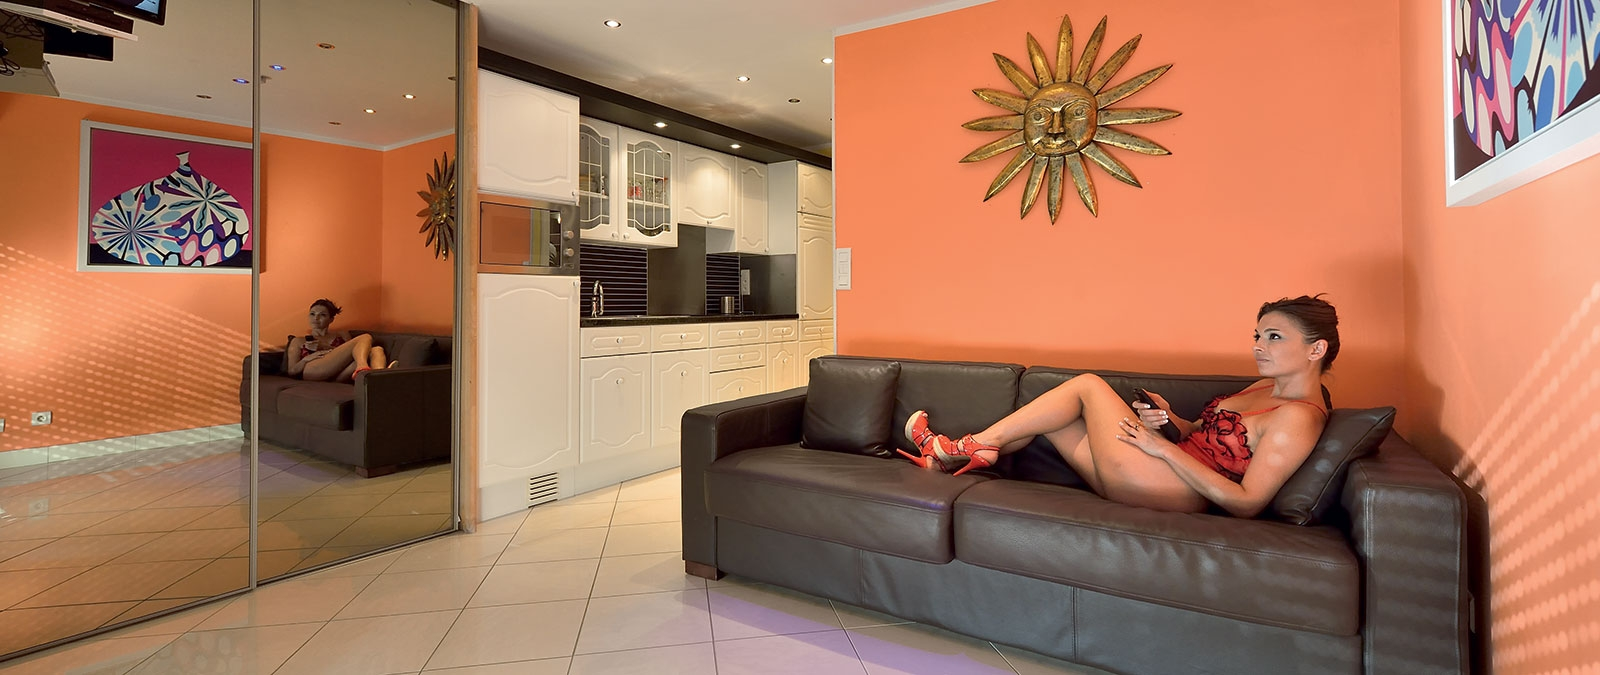 Lounge Sunny naturist studio flat for rent